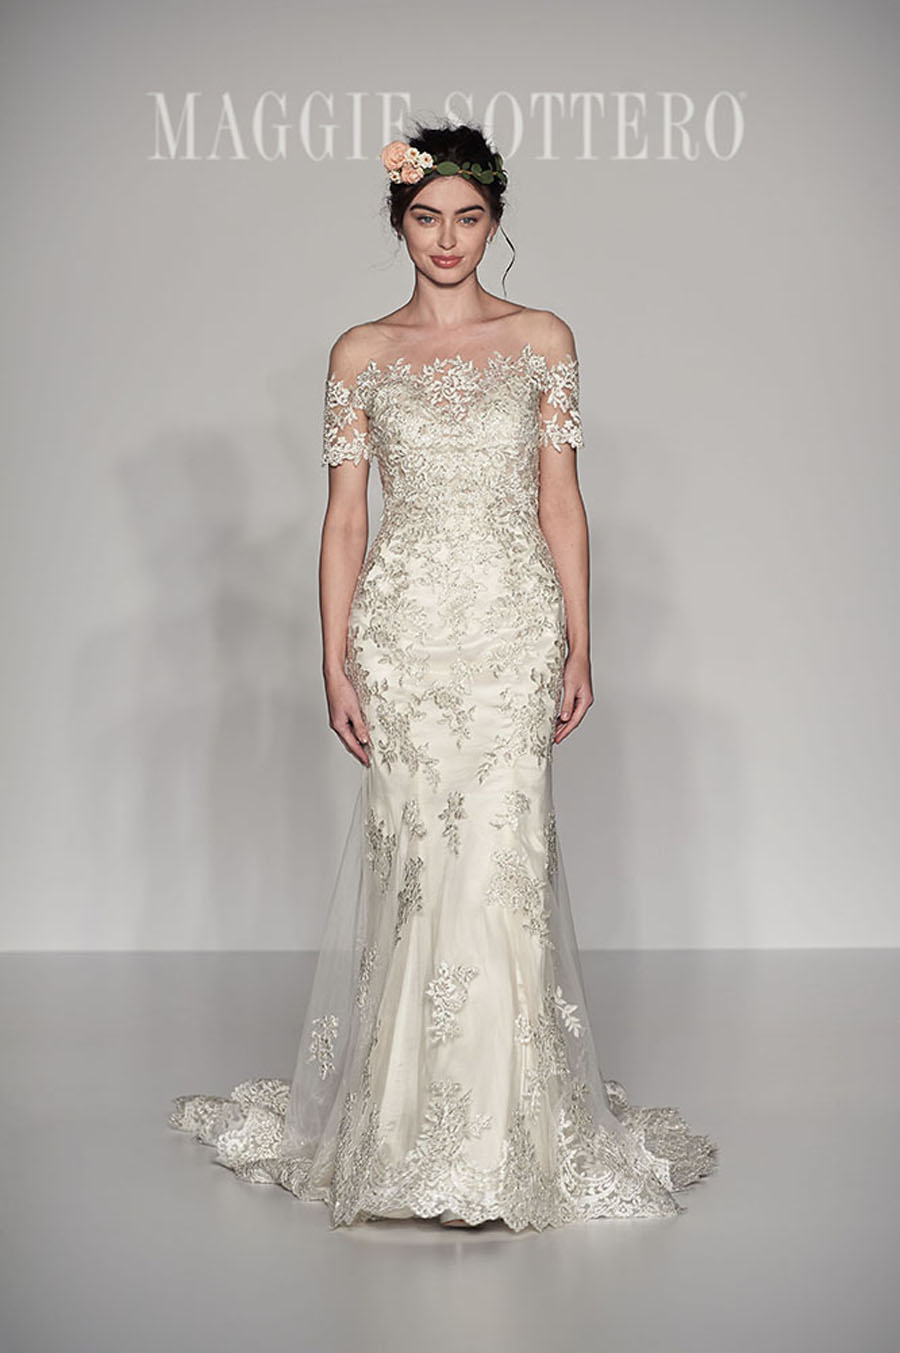 Maggie Sottero Spring 2017 Collection - Reynold front